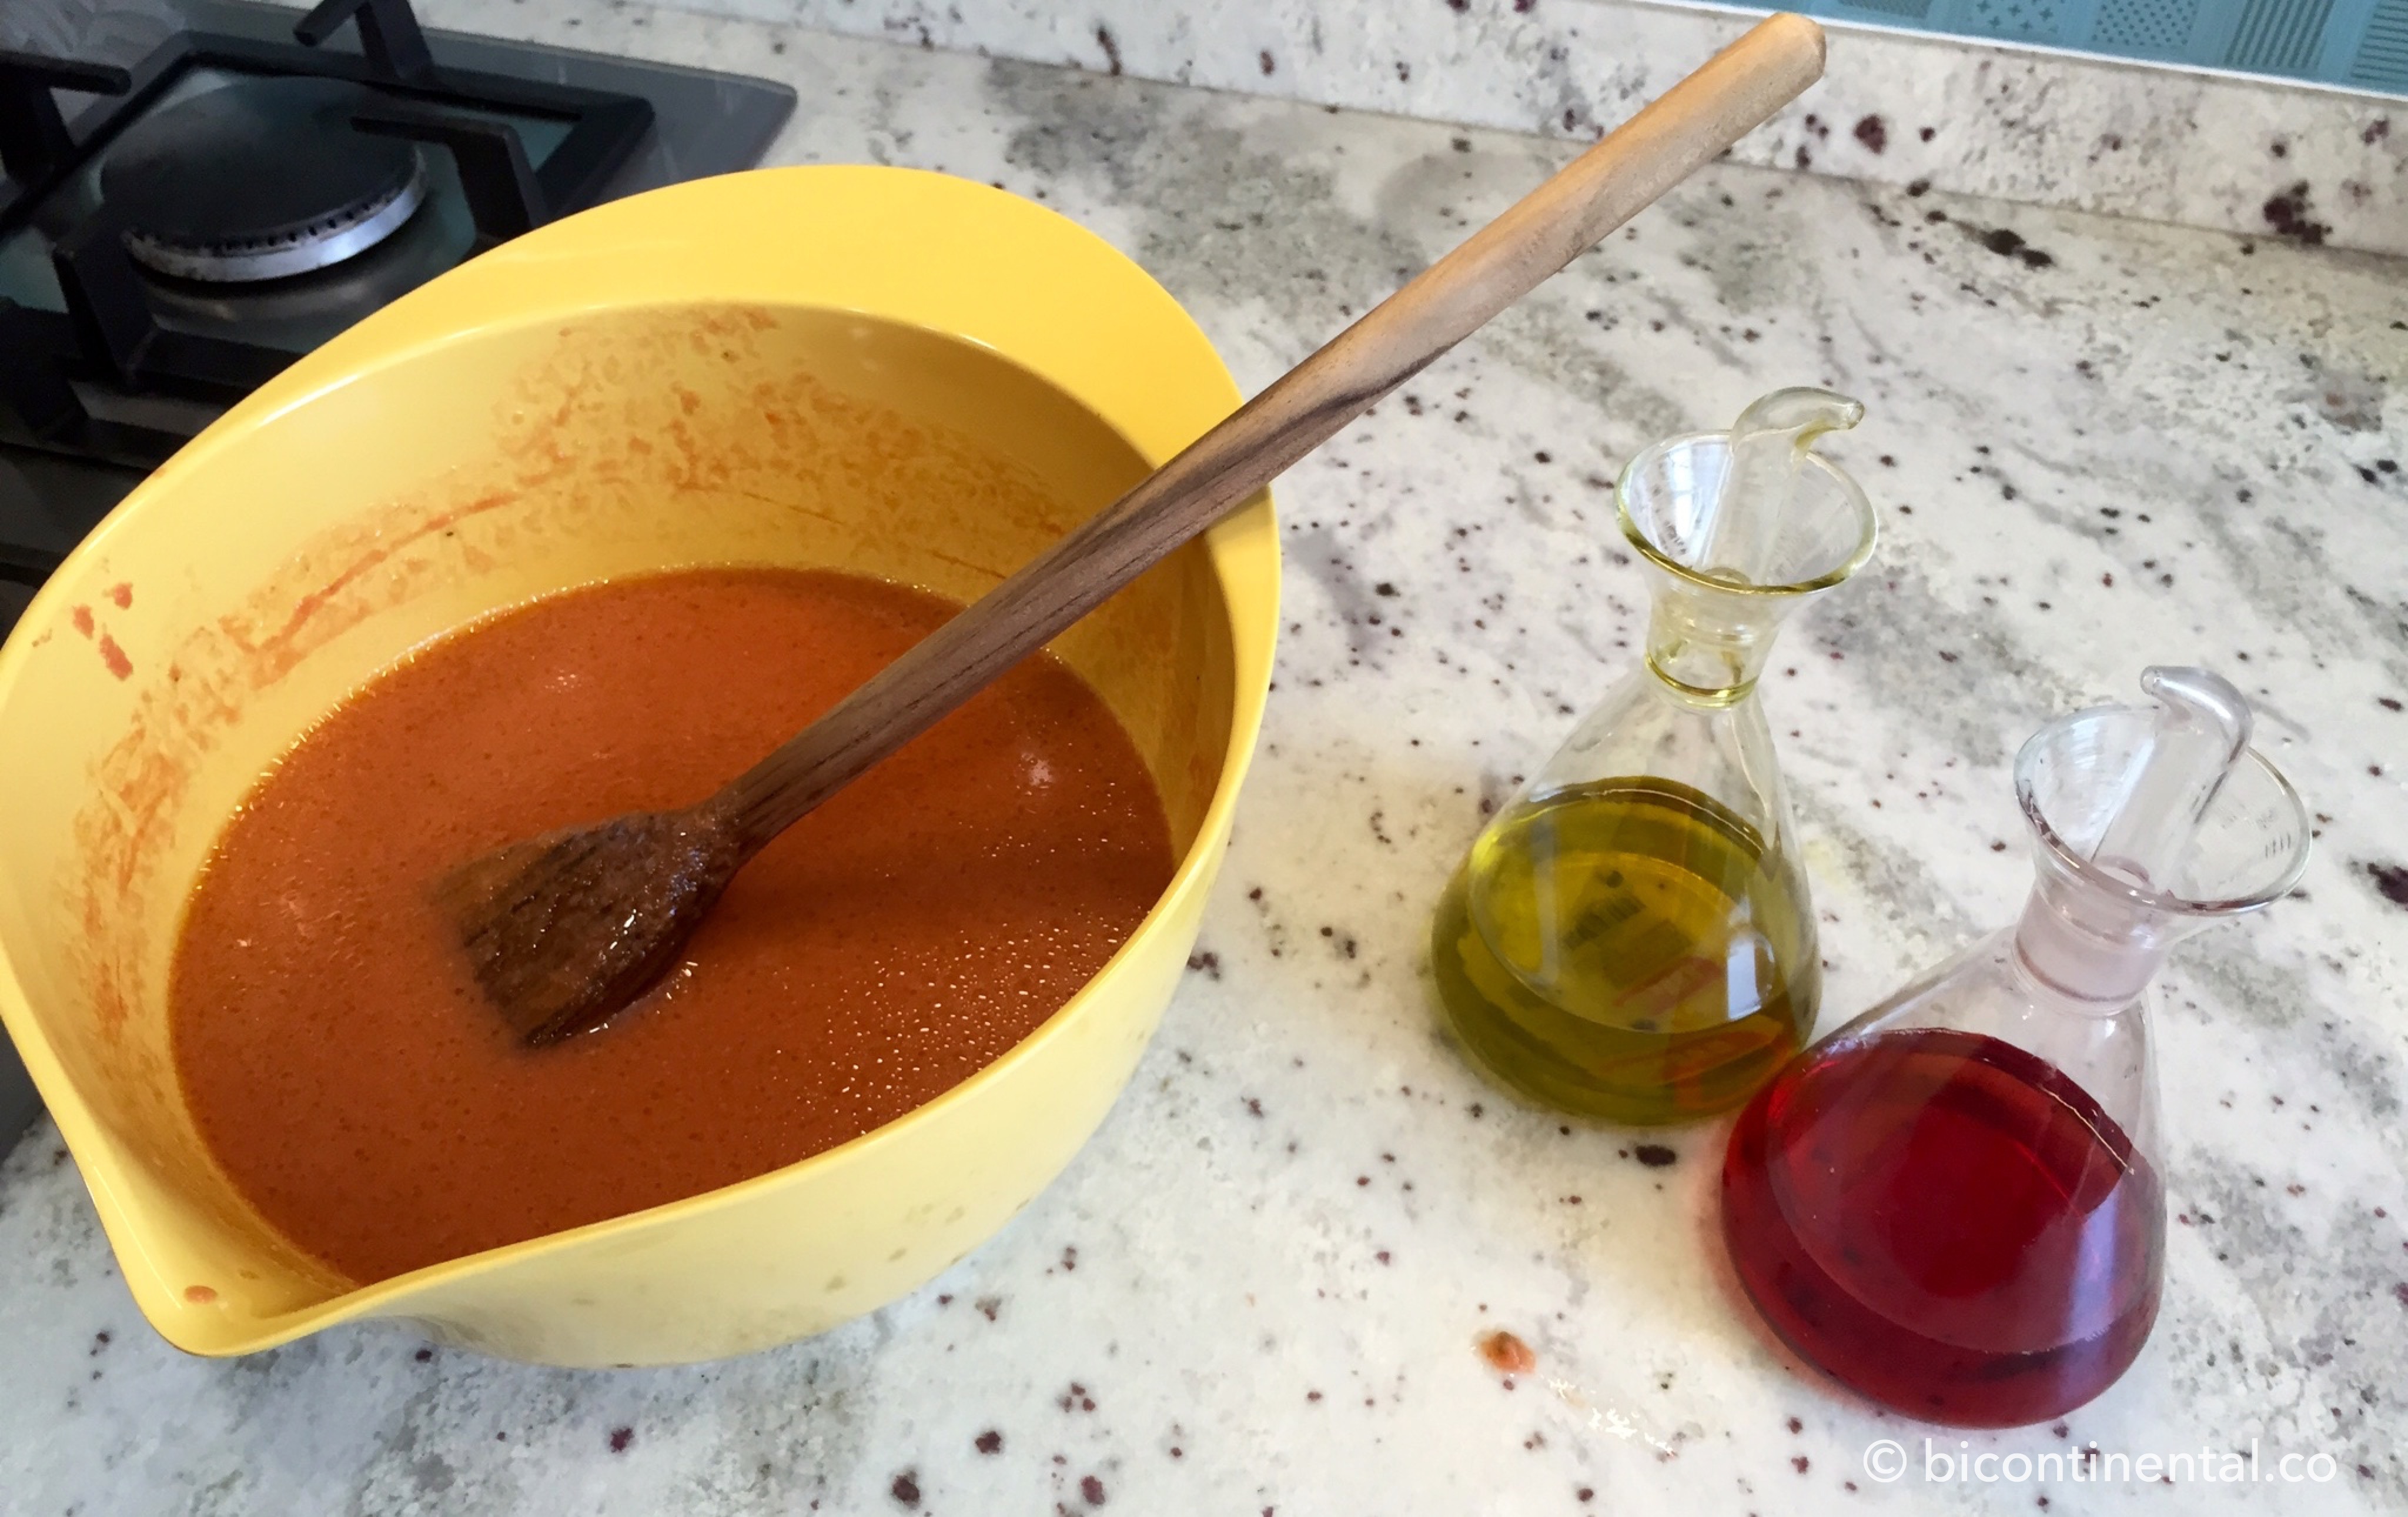 adding oil to gazpacho